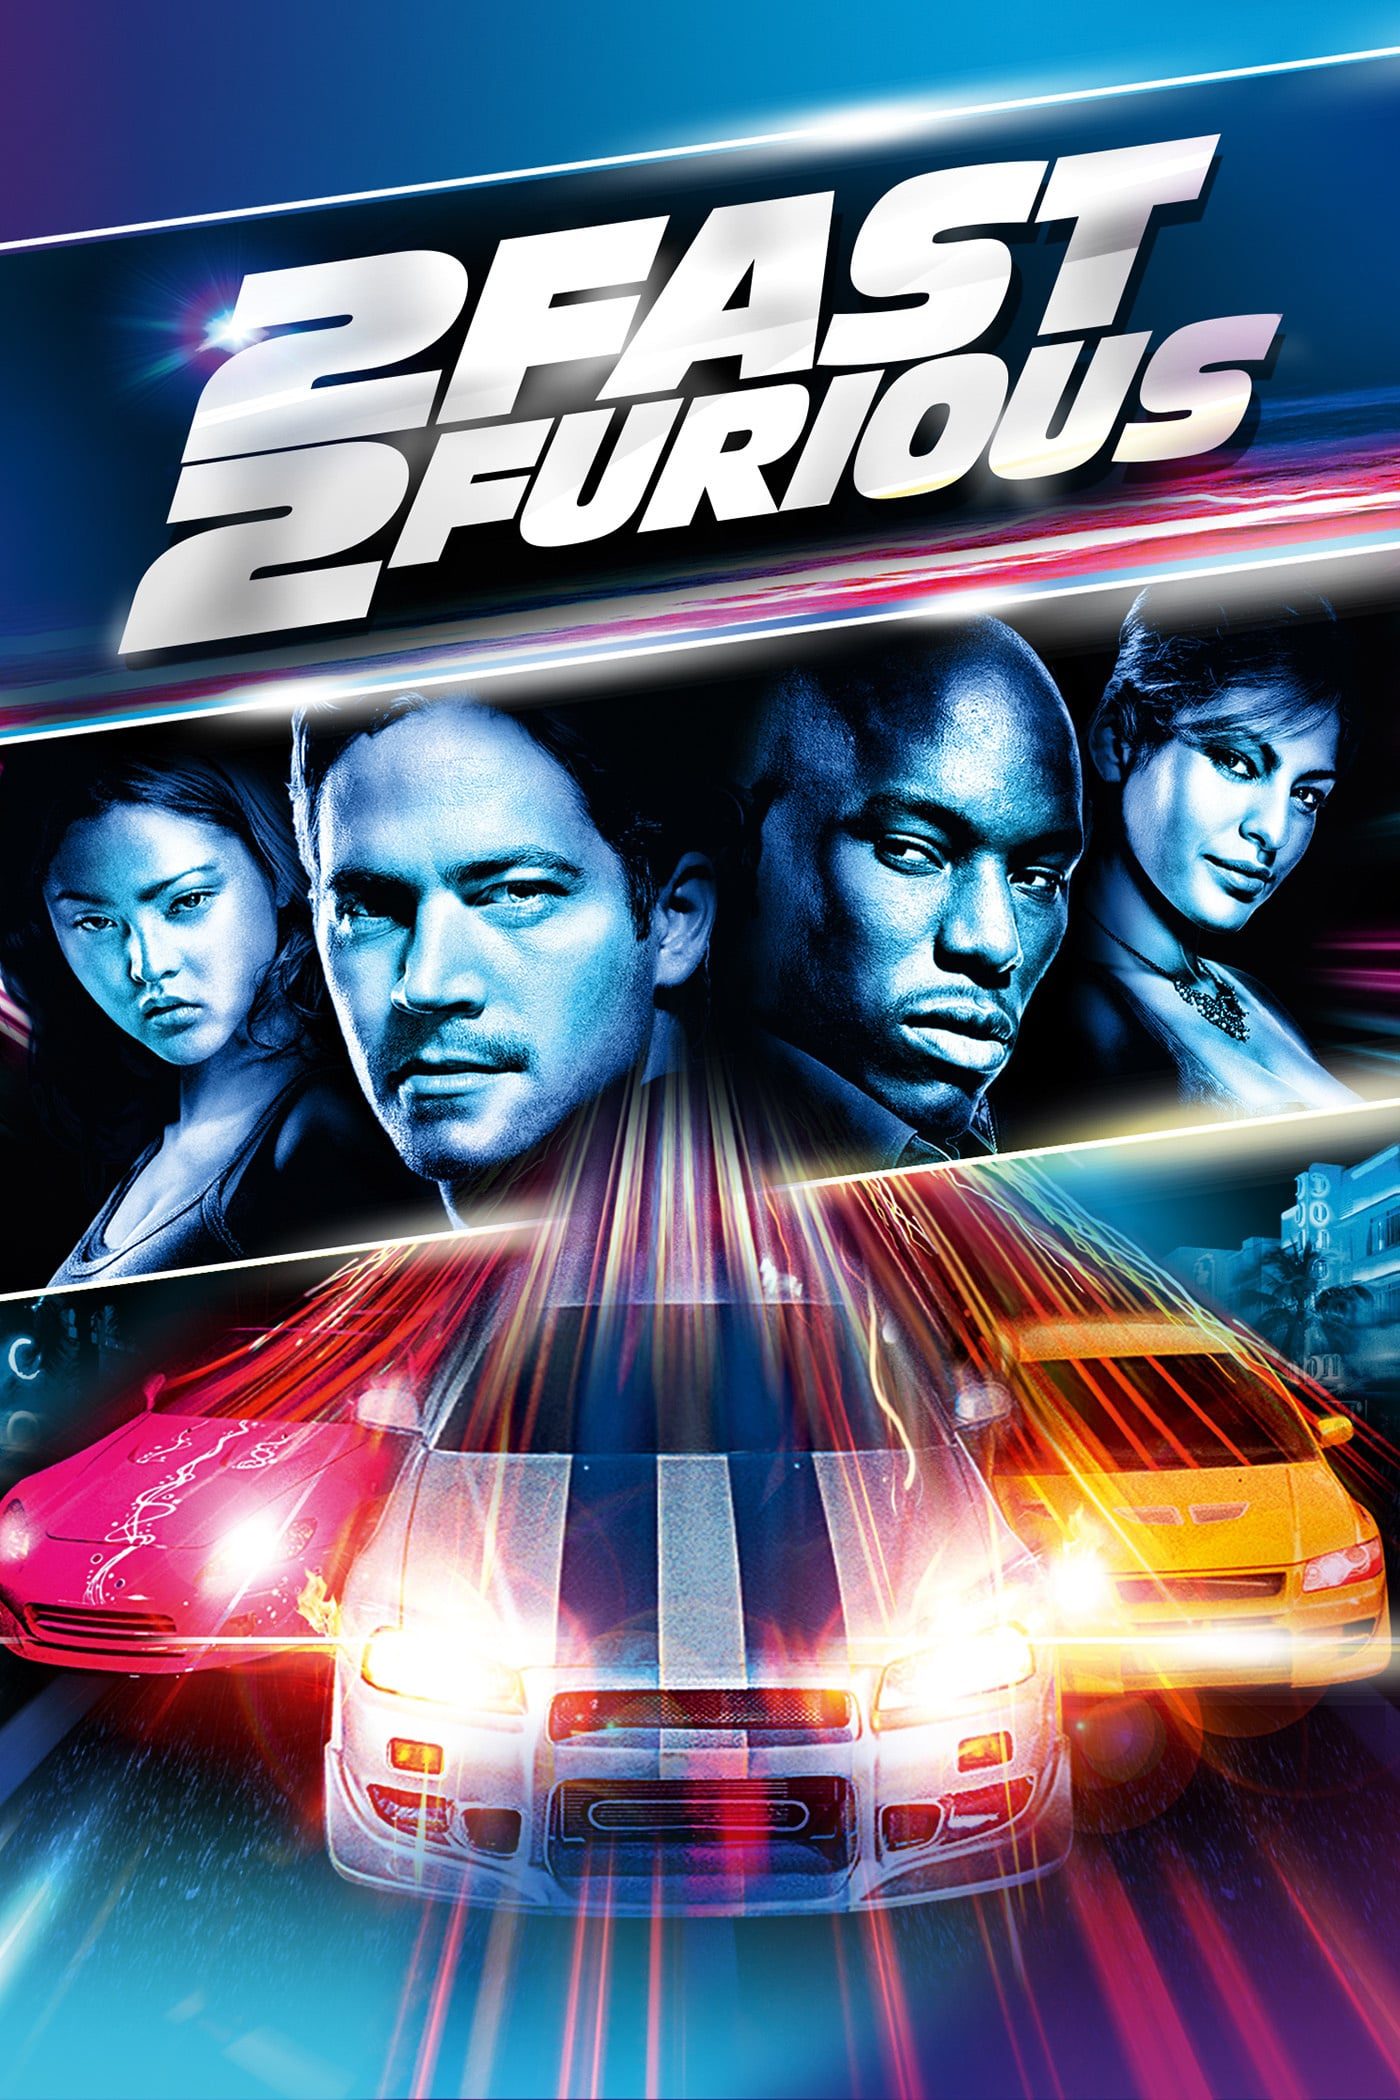 File:2Fast2Furious Poster.jpg